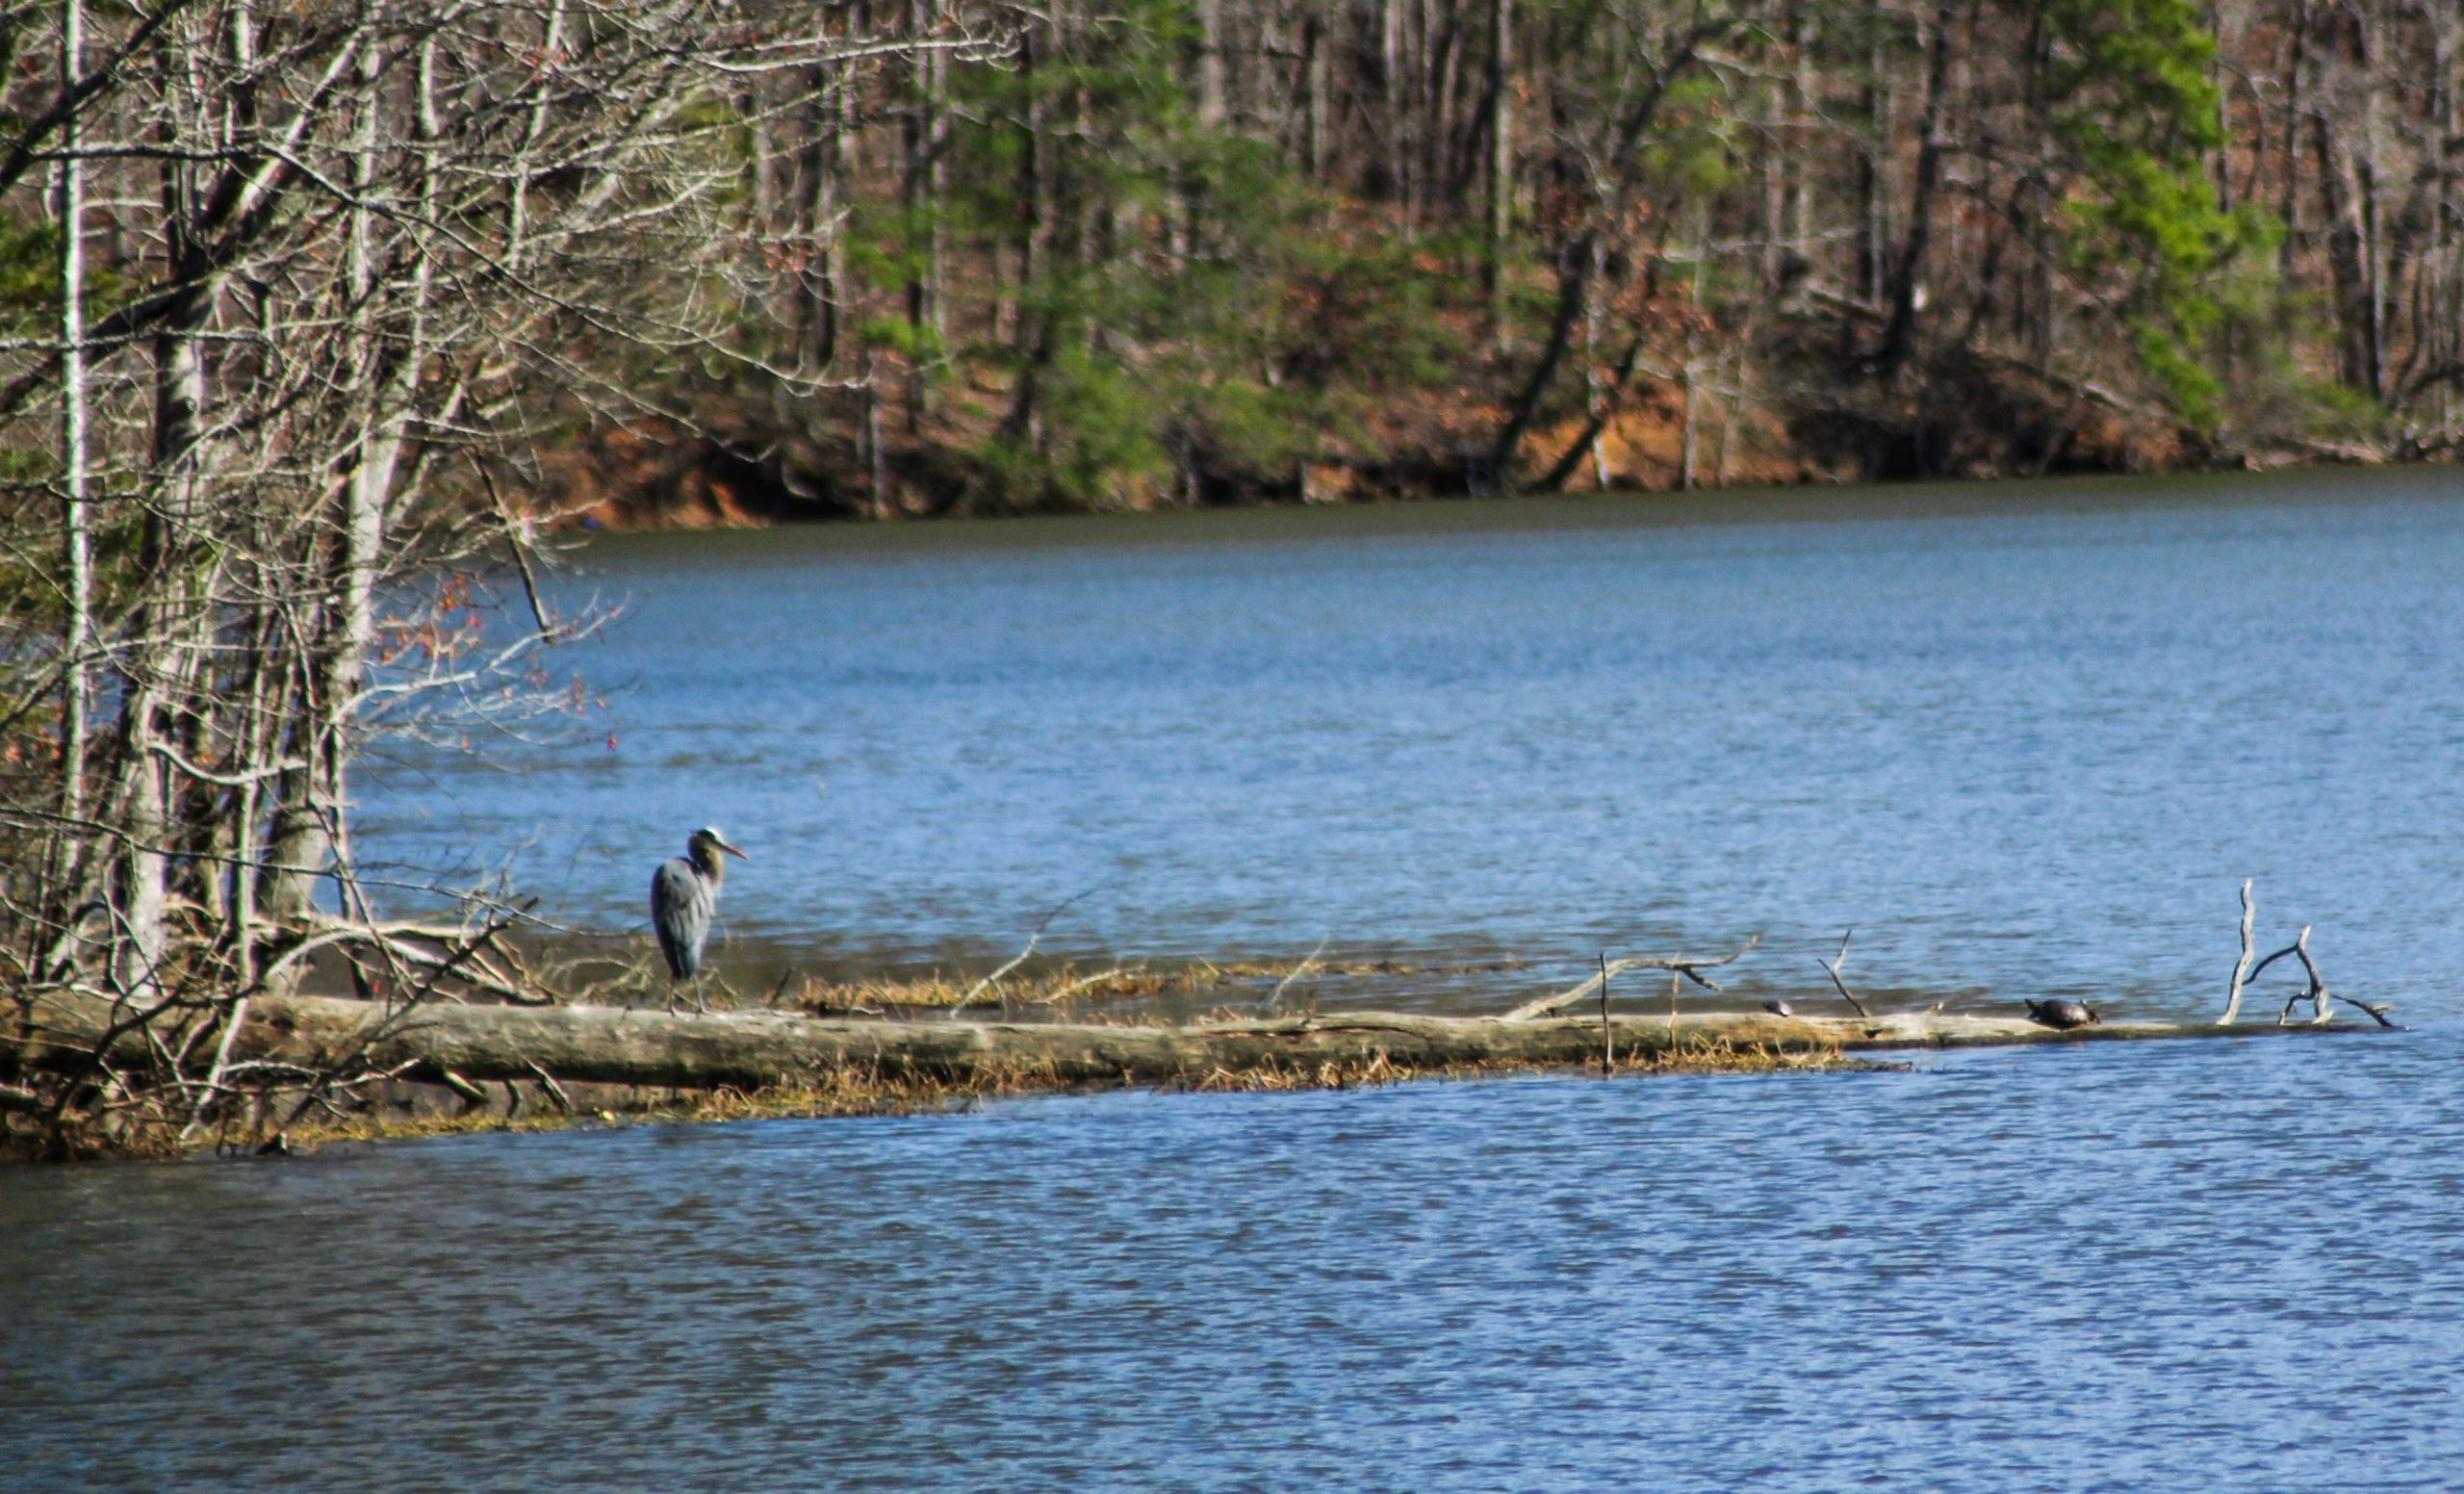 GALLERY: Back to nature at Salem Lake